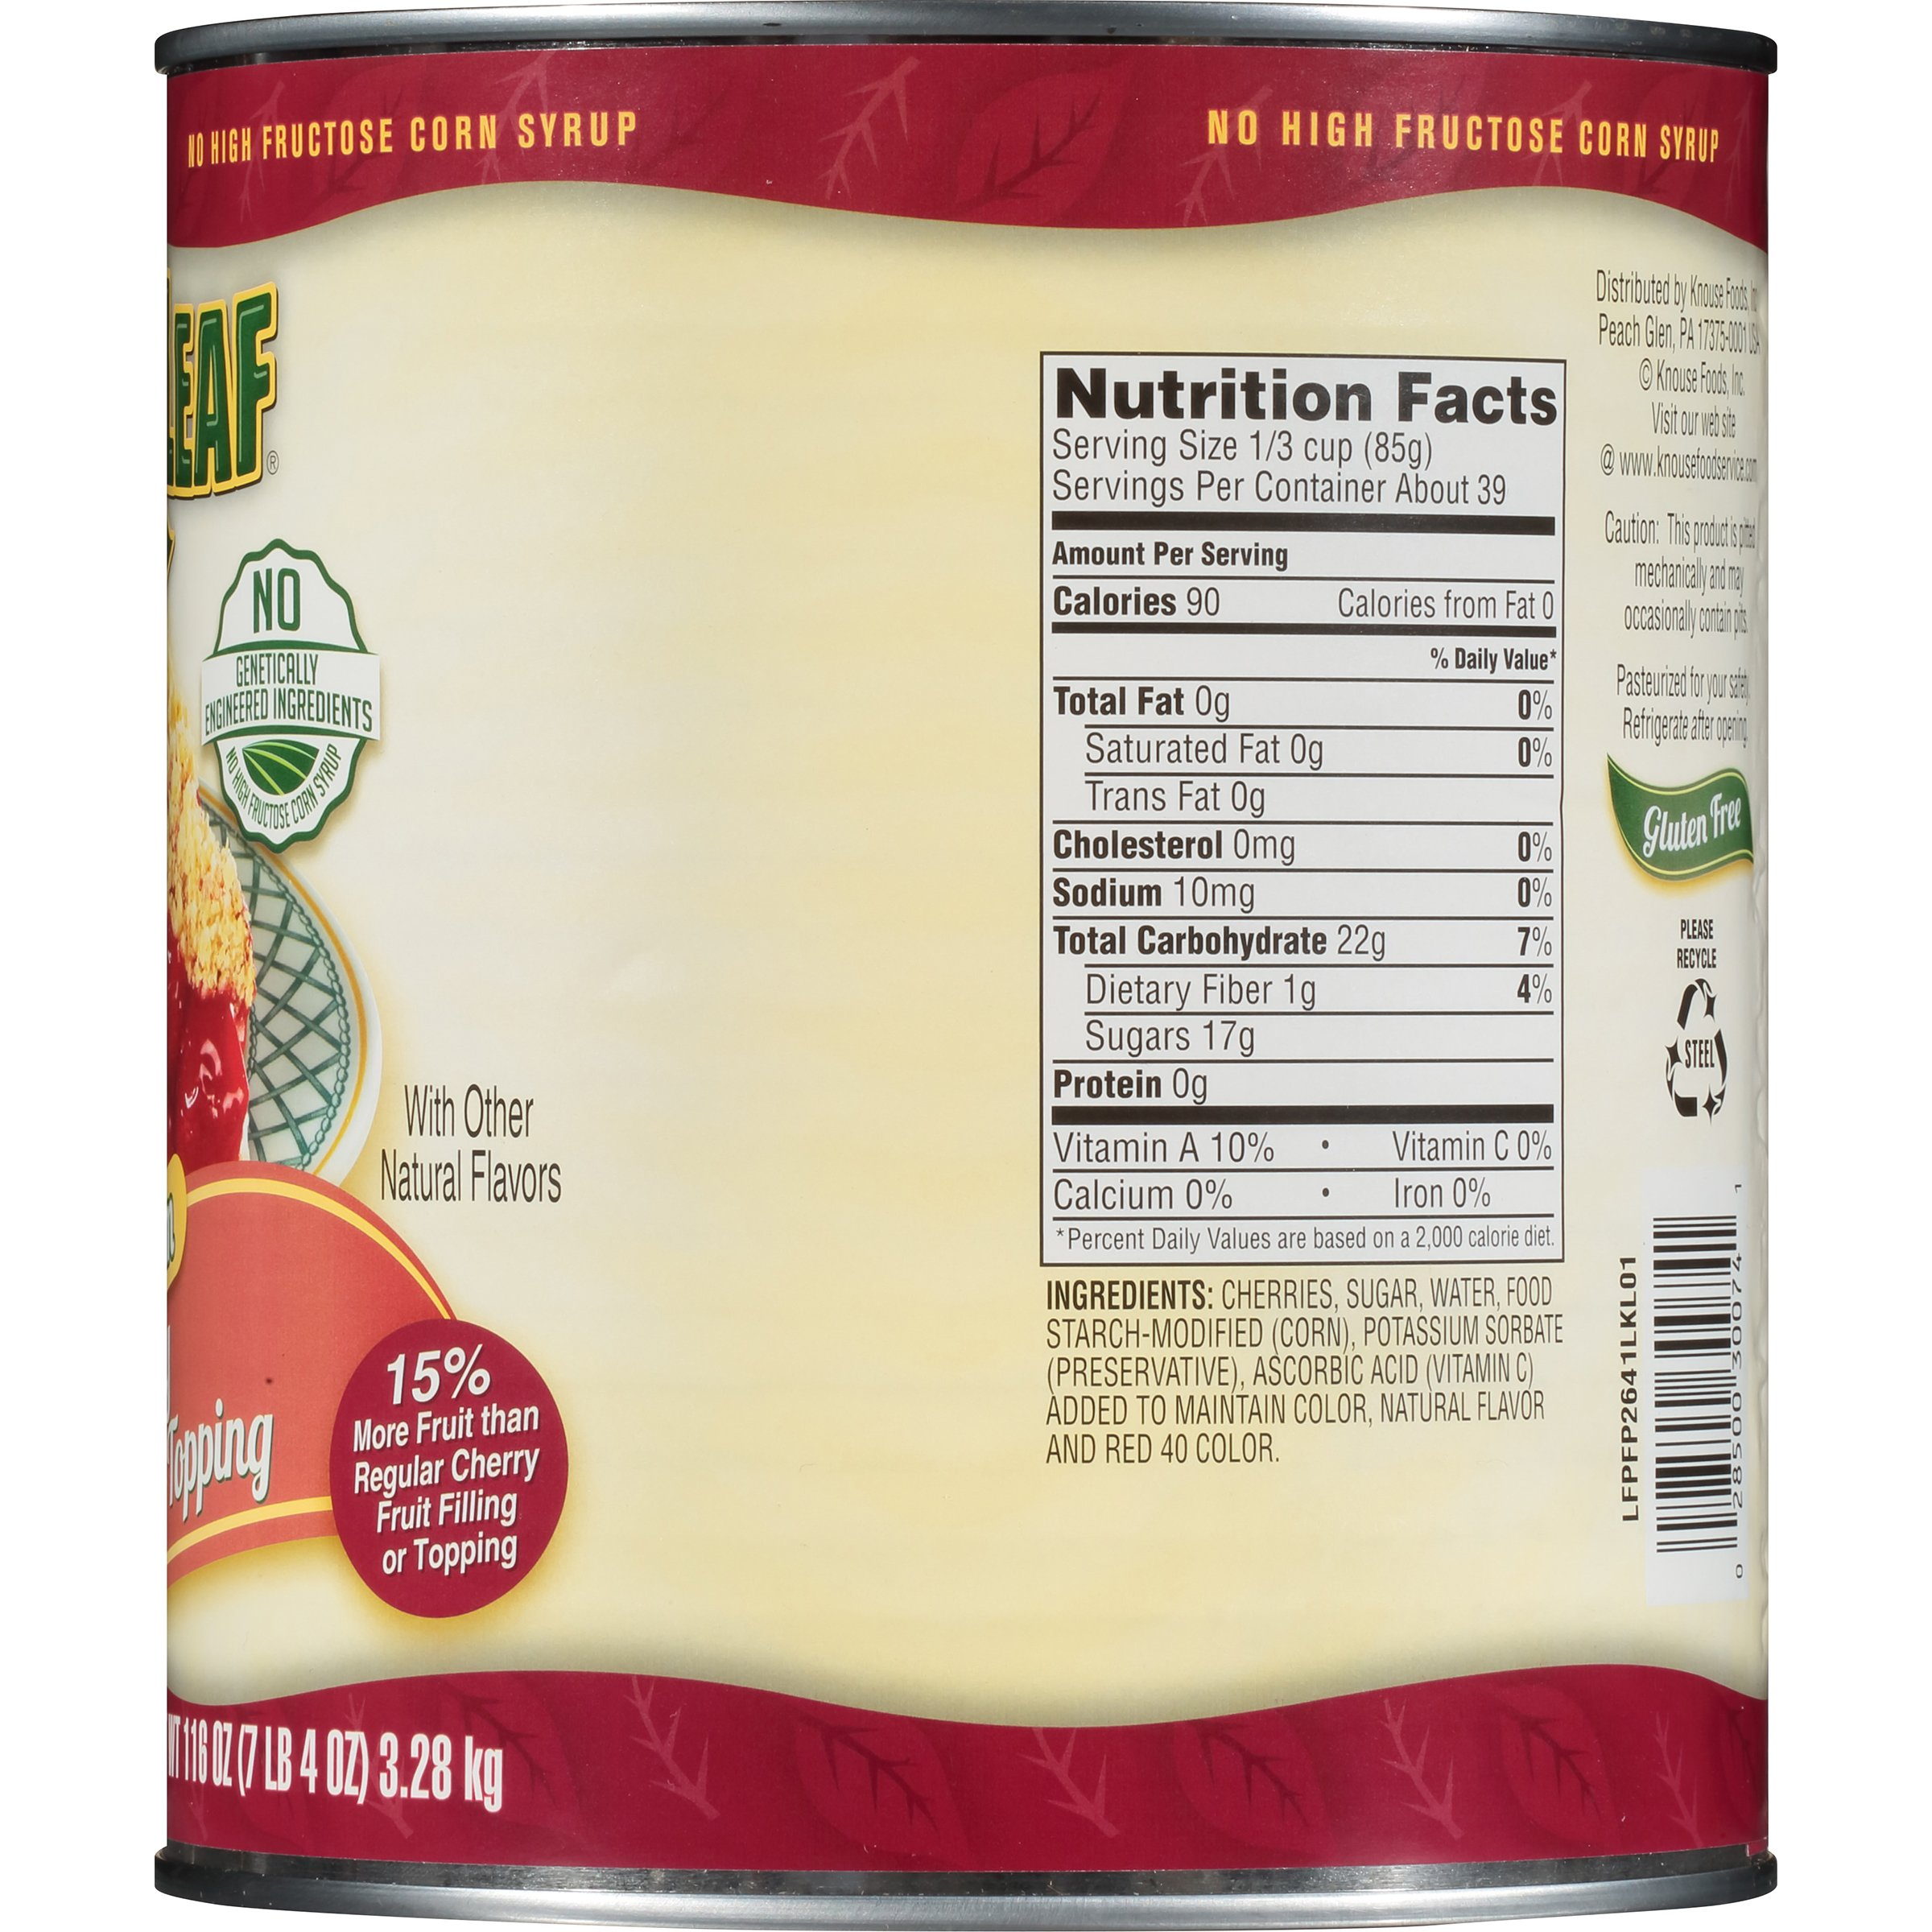 Lucky Leaf Premium Clean Label Cherry Fruit Filling or Topping Can, Cherry, 116 Ounce by Lucky Leaf (Image #3)